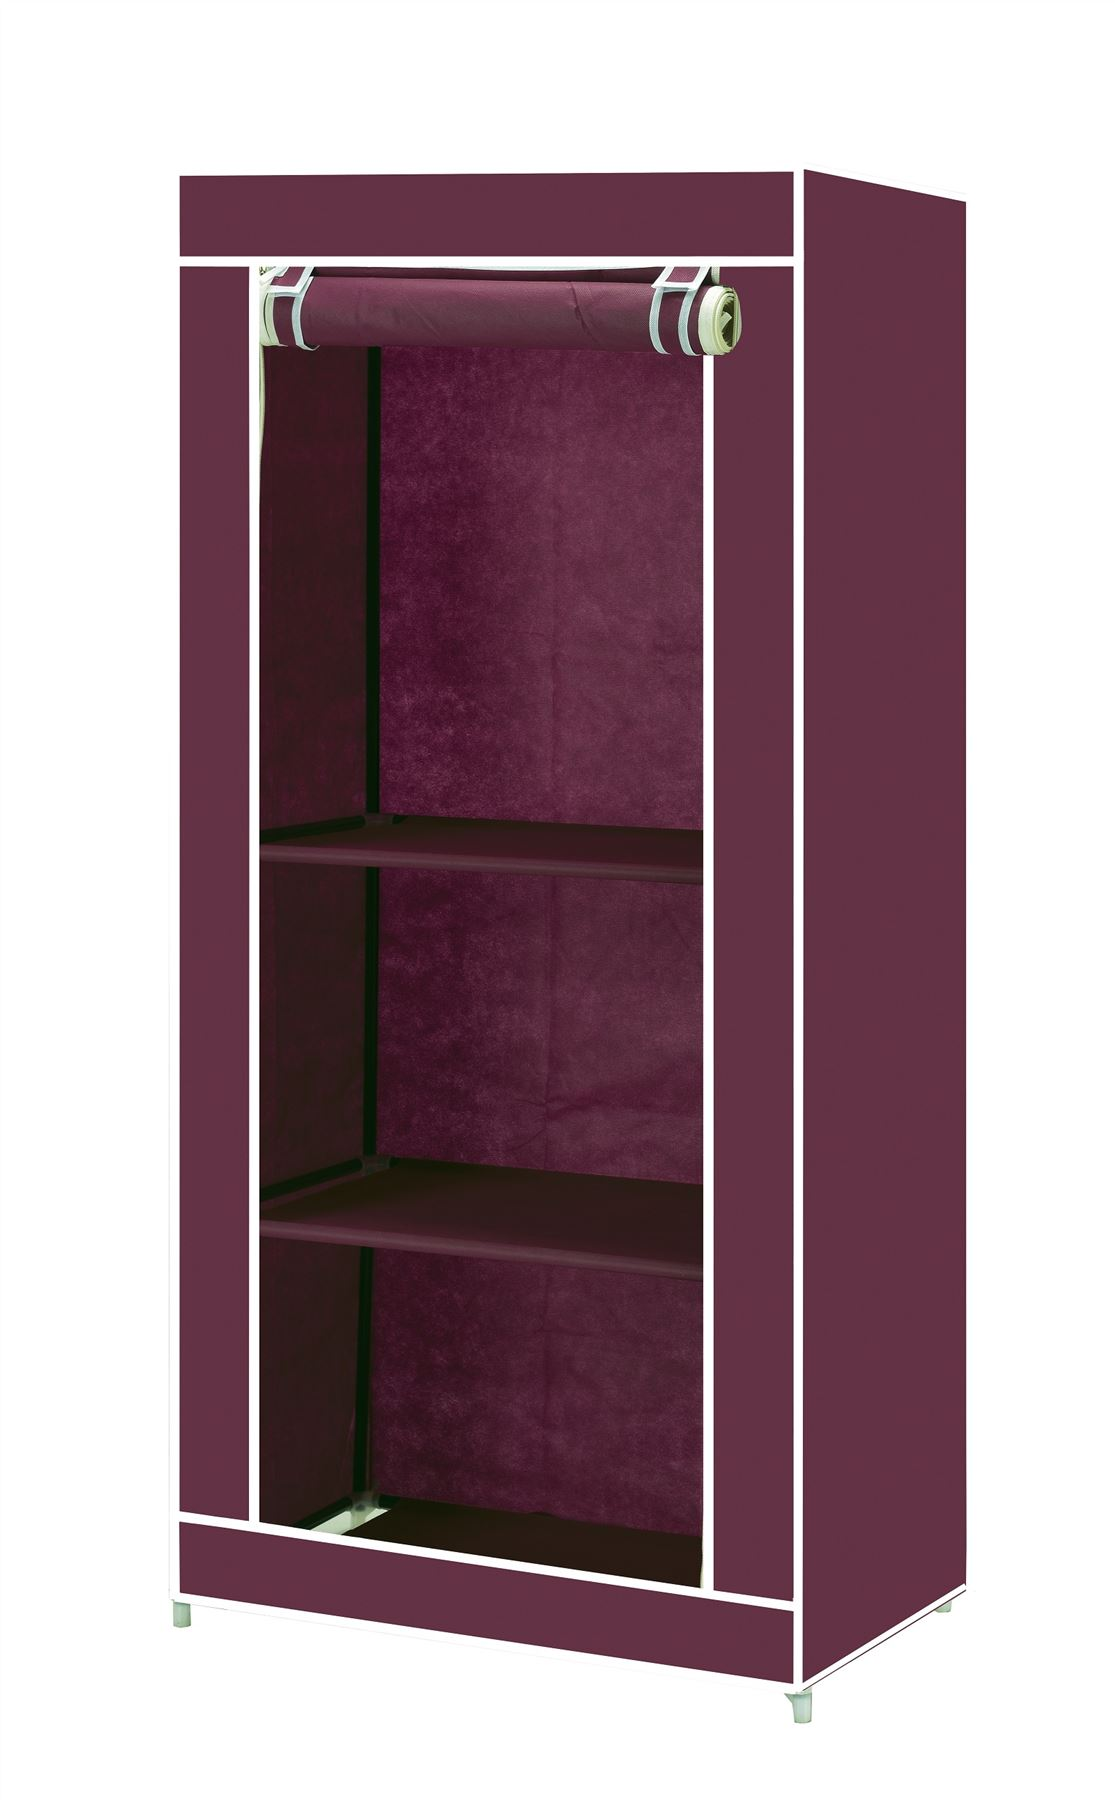 simple toile v tements organisateur de stockage penderie armoire tag re tag res ebay. Black Bedroom Furniture Sets. Home Design Ideas